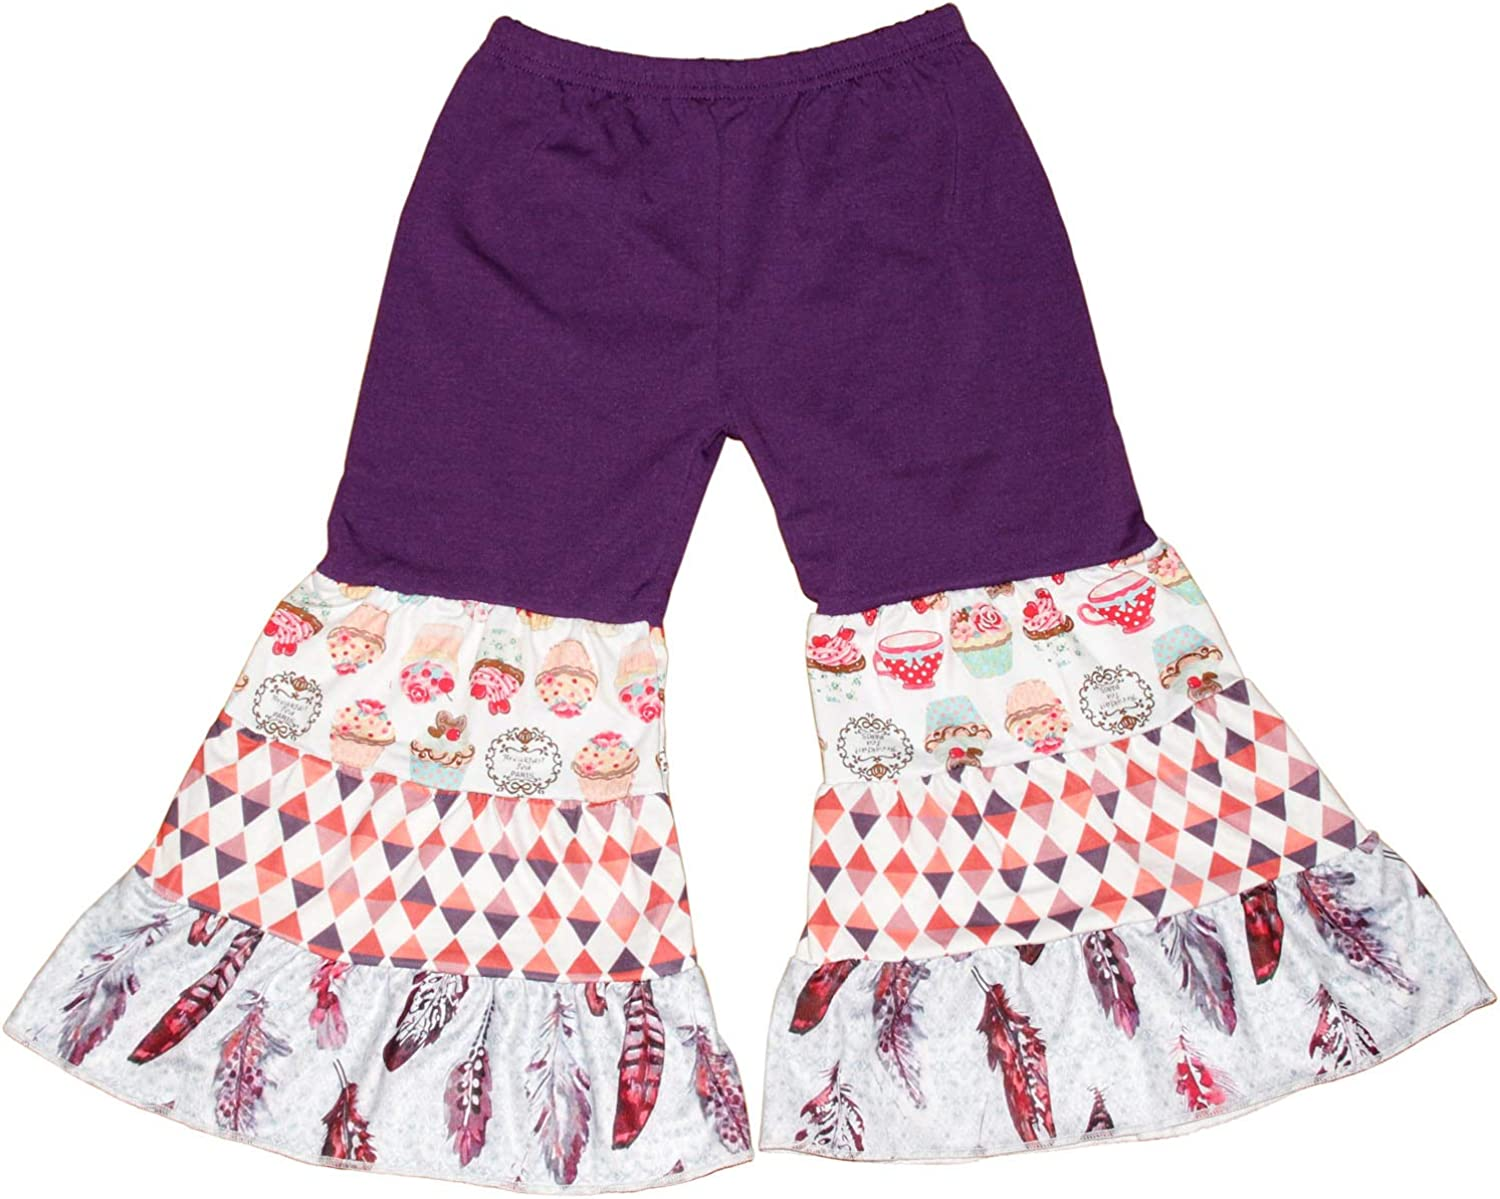 Toddler Girls Fall Winter Holidays Christmas Wear Clothing Sets Dress Pants Boutique Outfits Baby Girls Ruffle Outfits